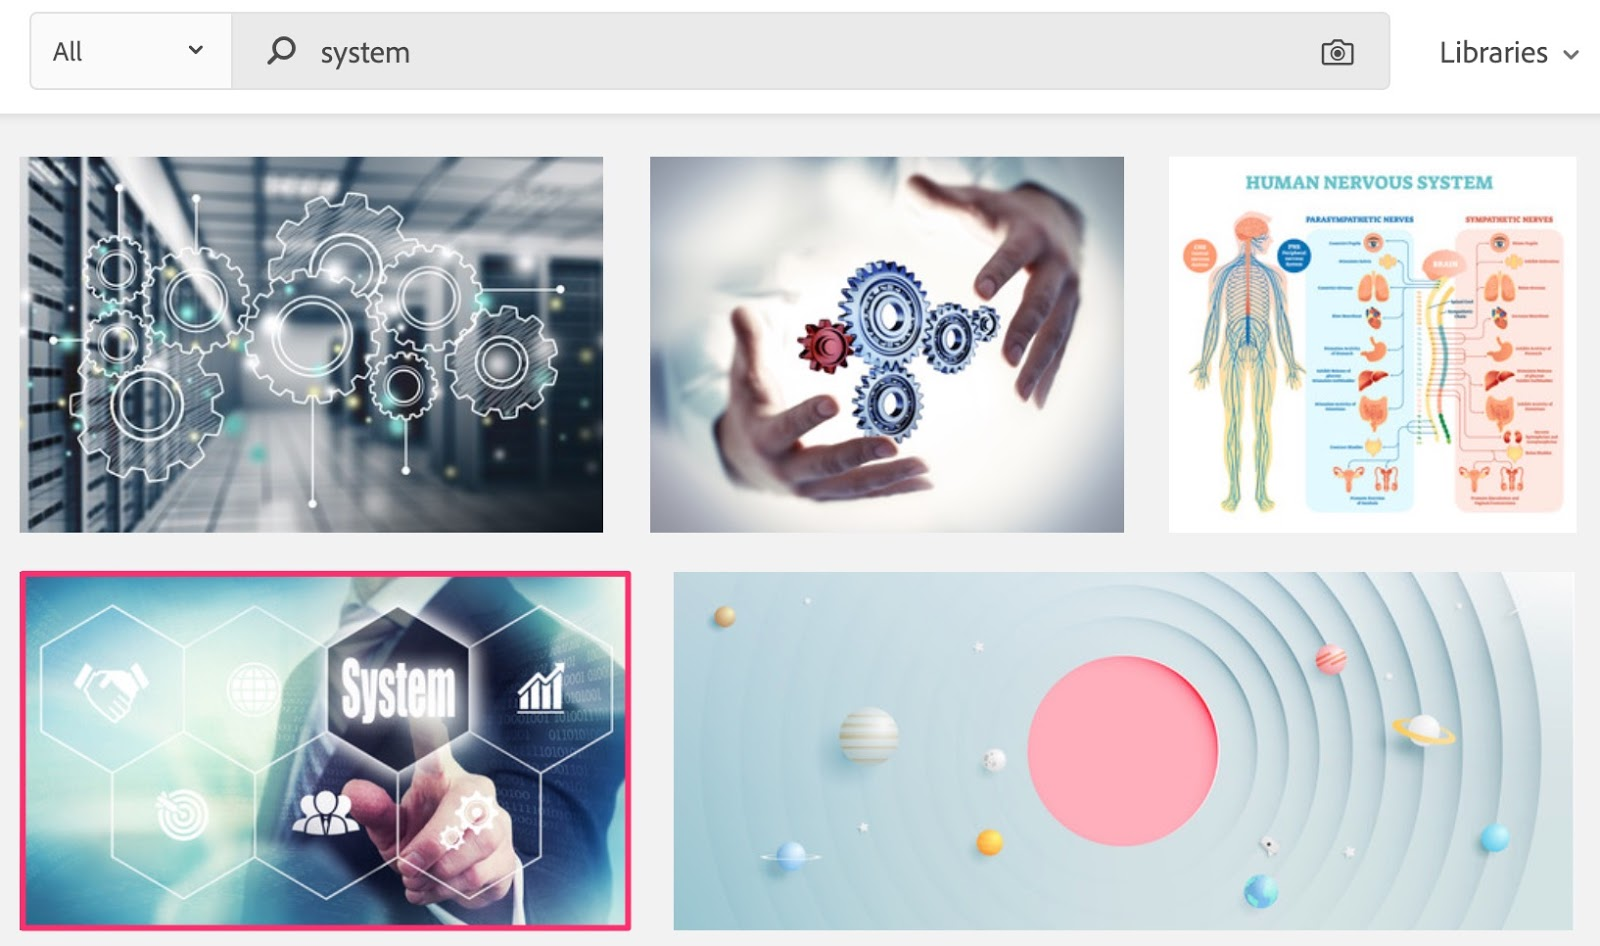 "System photos royalty free images graphics vectors videos Adobe Stock"" srcset=""https://i2.wp.com/ahrefs.com/blog/wp-content/uploads/2019/03/System_photos__royalty-free_images__graphics__vectors___videos___Adobe_Stock.jpg?ssl=1 1600w, https://ahrefs.com/blog/wp-content/uploads/2019/03/System_photos__royalty-free_images__graphics__vectors___videos___Adobe_Stock-768x454.jpg 768w, https://ahrefs.com/blog/wp-content/uploads/2019/03/System_photos__royalty-free_images__graphics__vectors___videos___Adobe_Stock-680x402.jpg 680w"" sizes=""(max-width: 1600px) 100vw, 1600px"